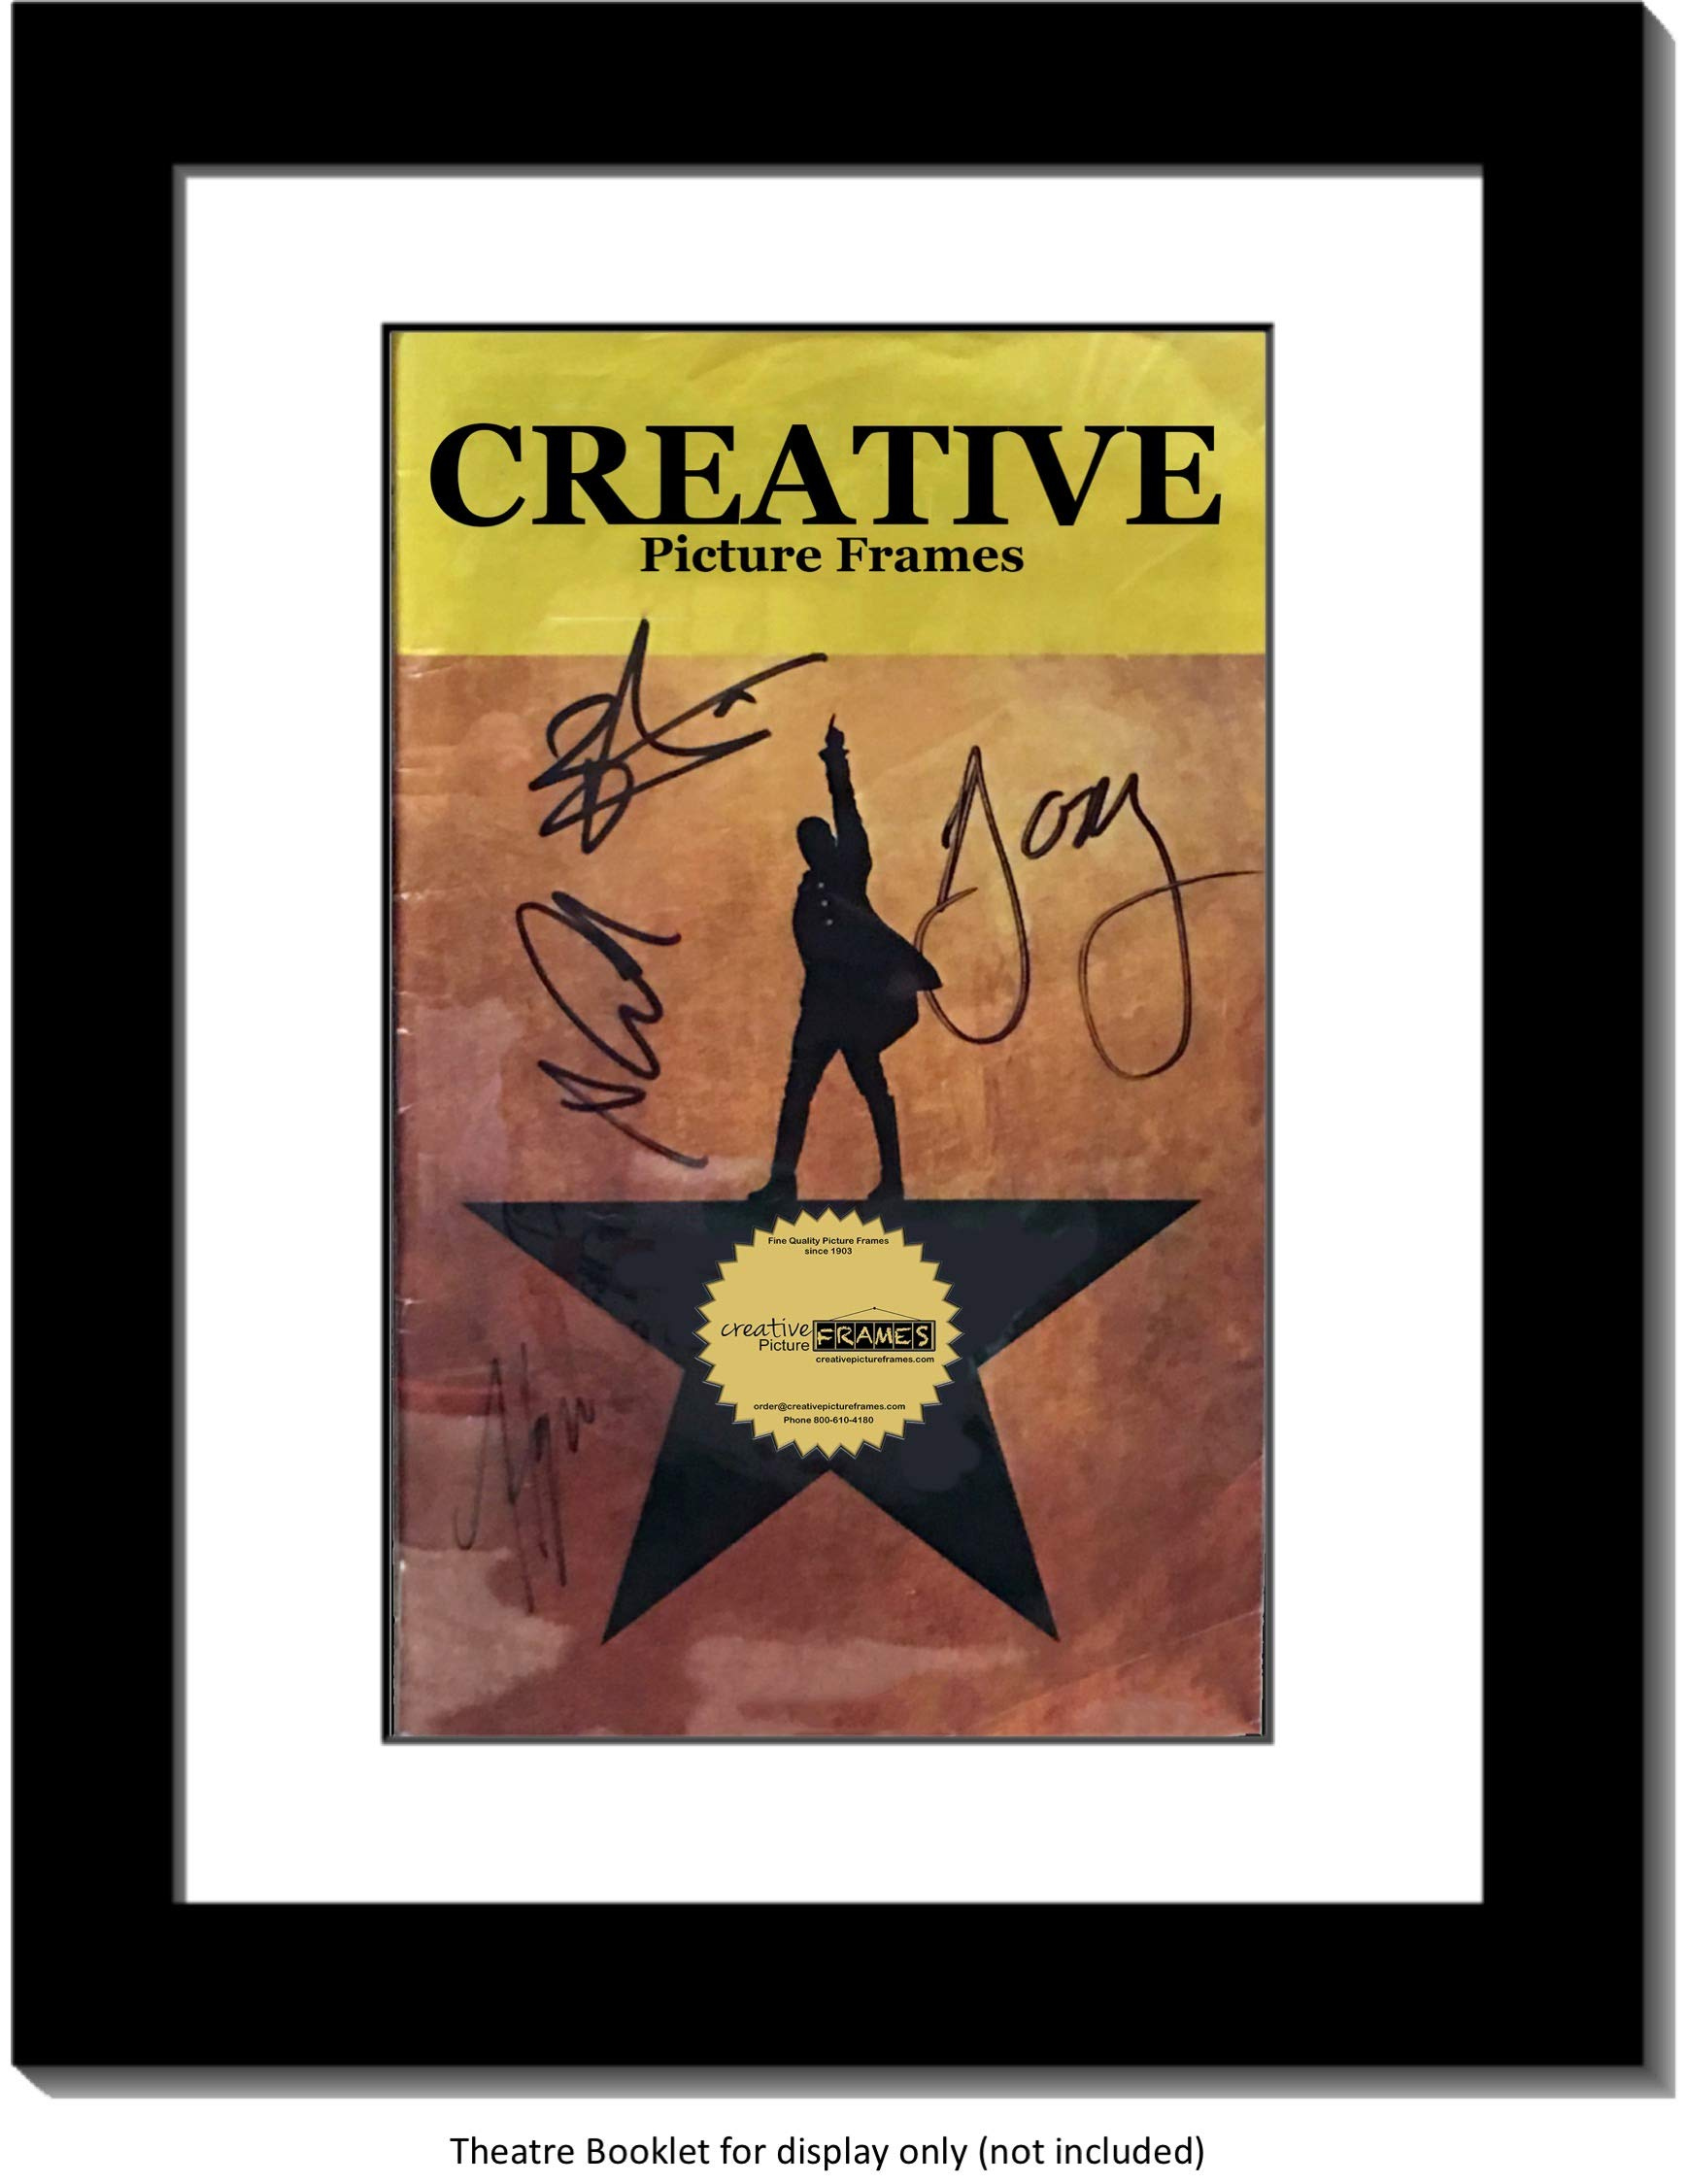 Creative Picture Frames [8.5x11bk-w Black Theatre Frame with White Matting, Holds 5.5x8.5-inch Media with Installed Hanger and Stand (Theatre Bill Not Included) by Creative Picture Frames